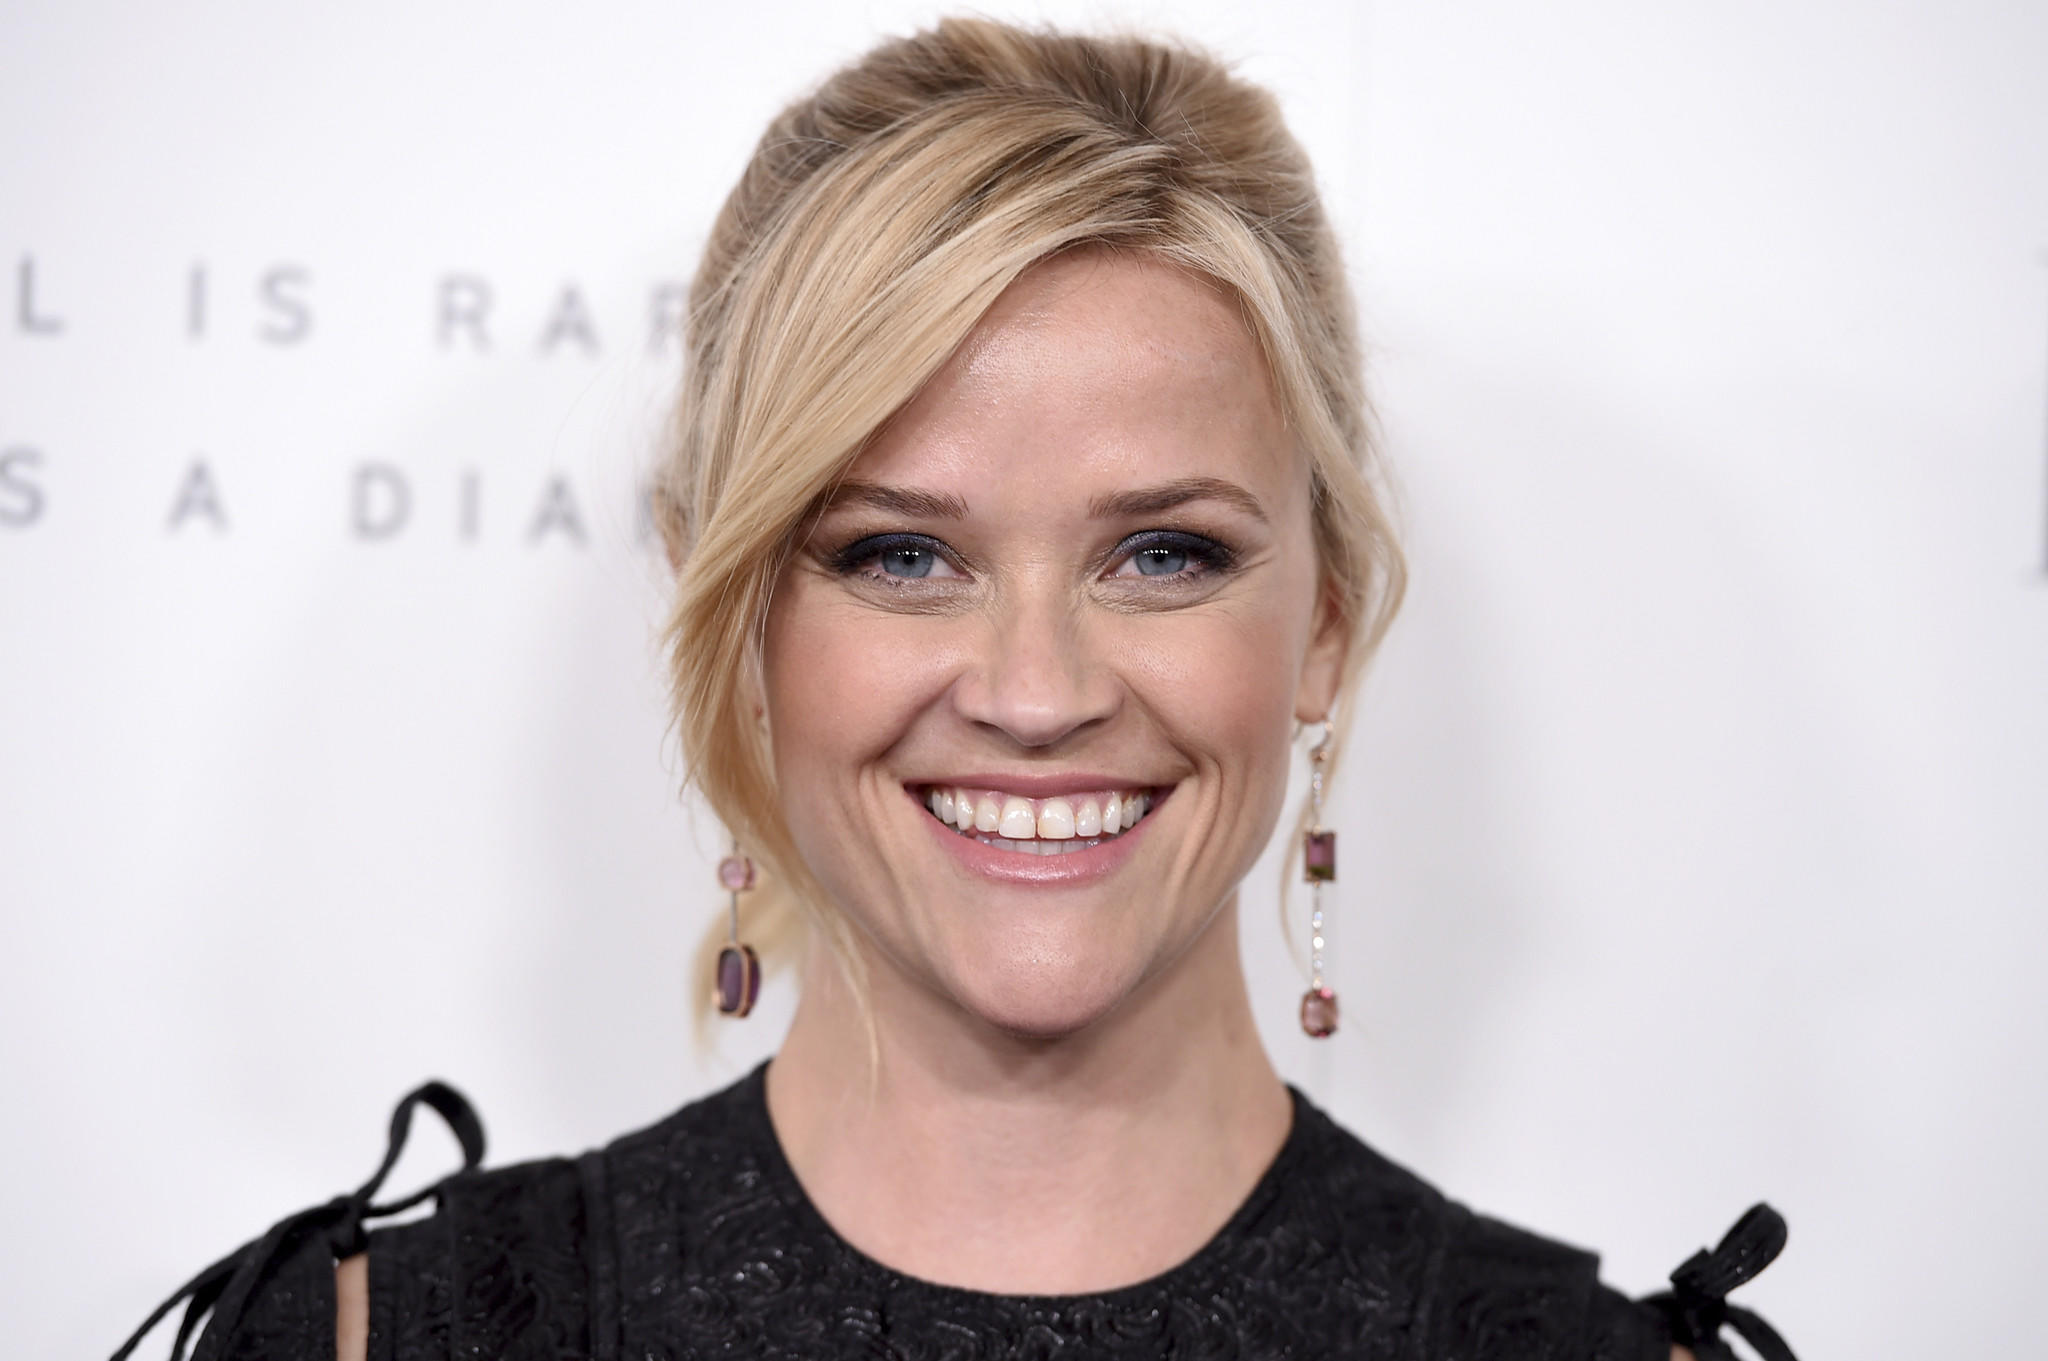 Reese Witherspoon arrives at the Elle Women in Hollywood Awards at the Four Seasons Hotel Beverly Hills on Monday. (Jordan Strauss  /Invision/Associated Press)